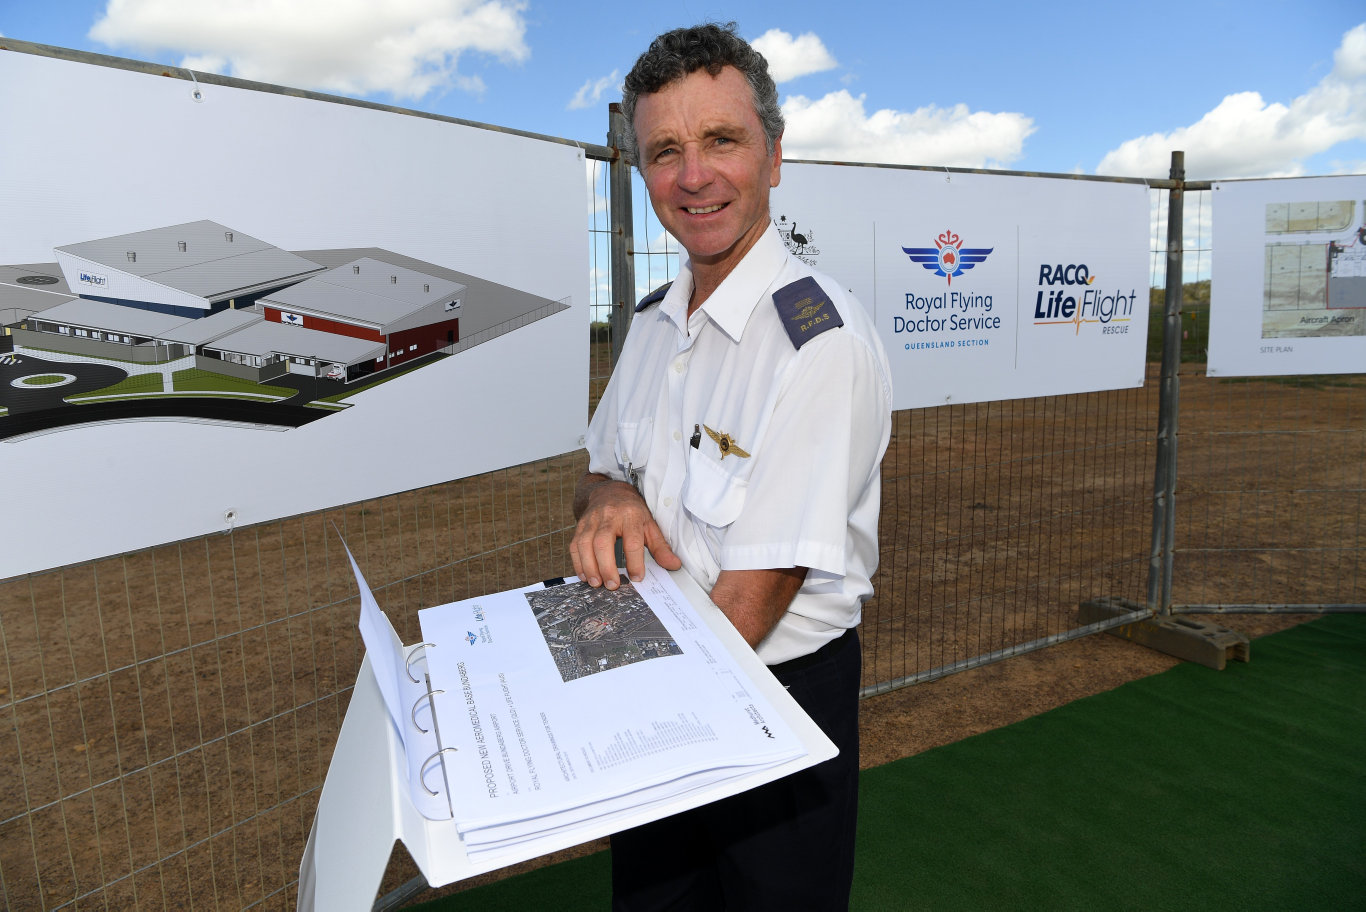 Haydn Frisby studies the plans for the proposed new aeromedical base at the Bundaberg airport.